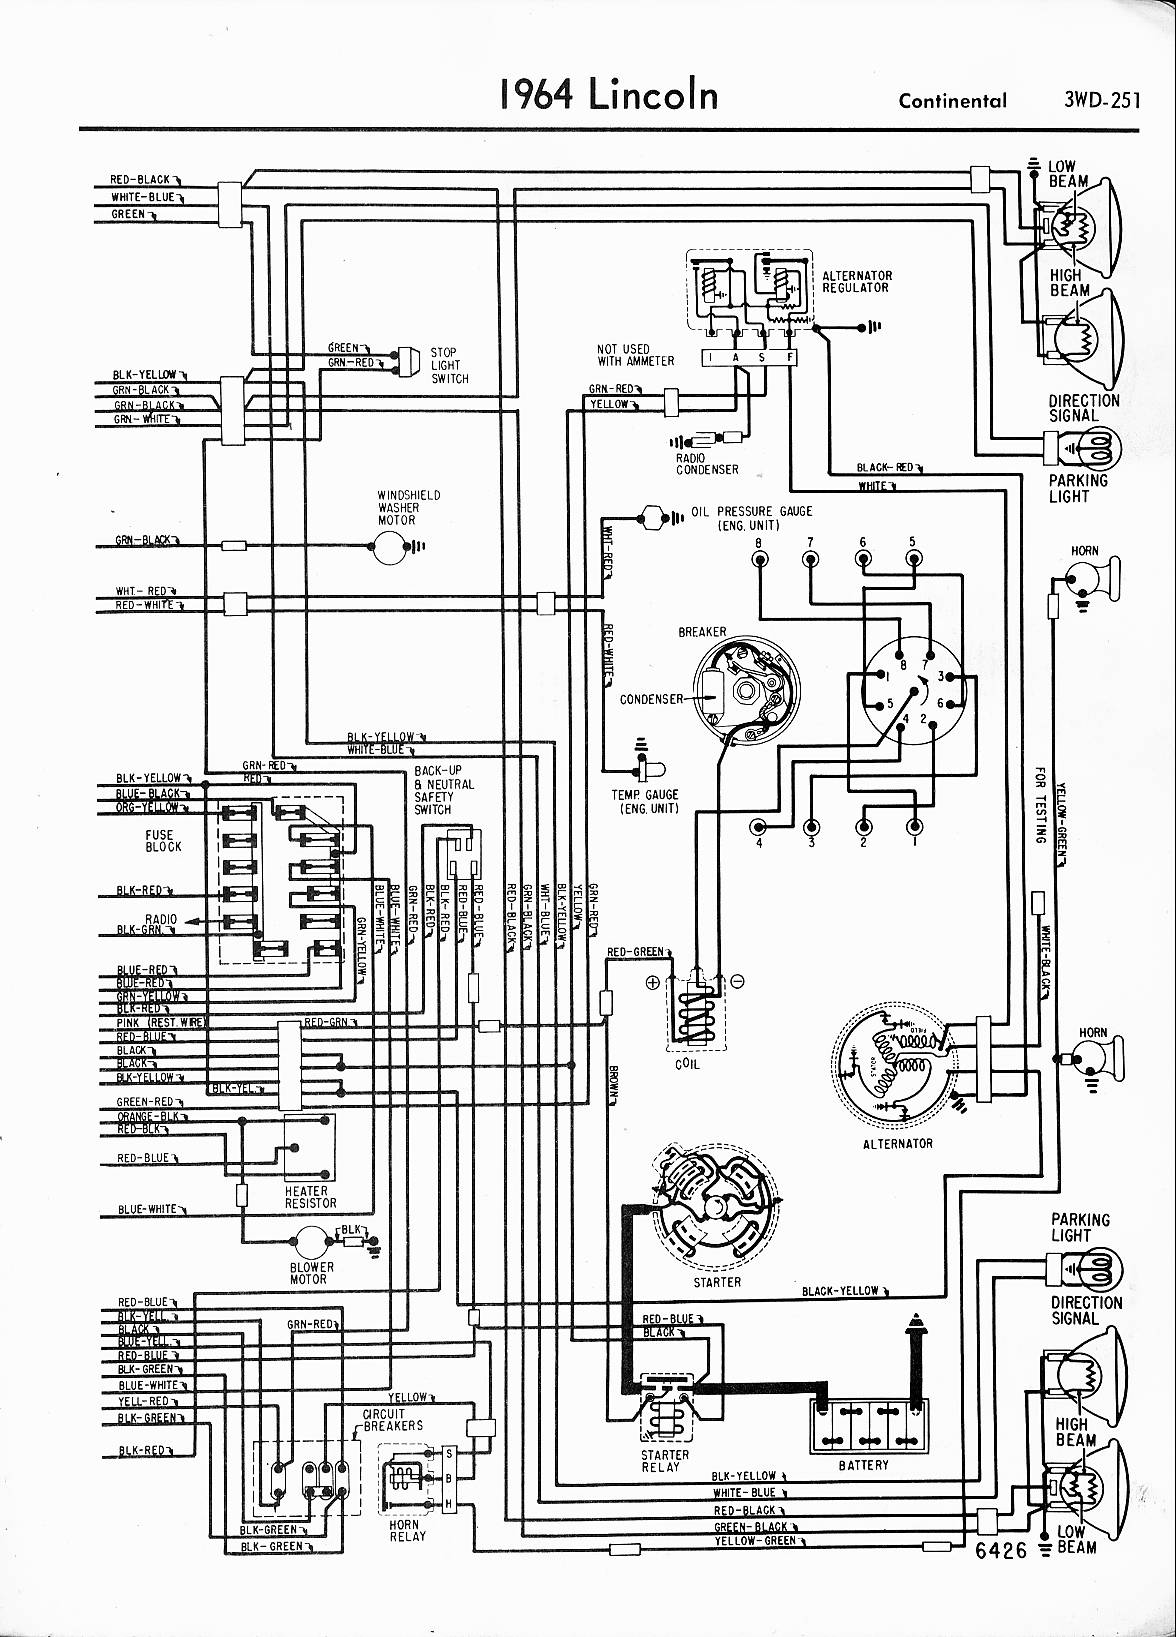 1960 Lincoln Wiring Diagram Ford Thunderbird Engine Rh 86 Raepoppweiss De Schematic 1999 Continental 2000